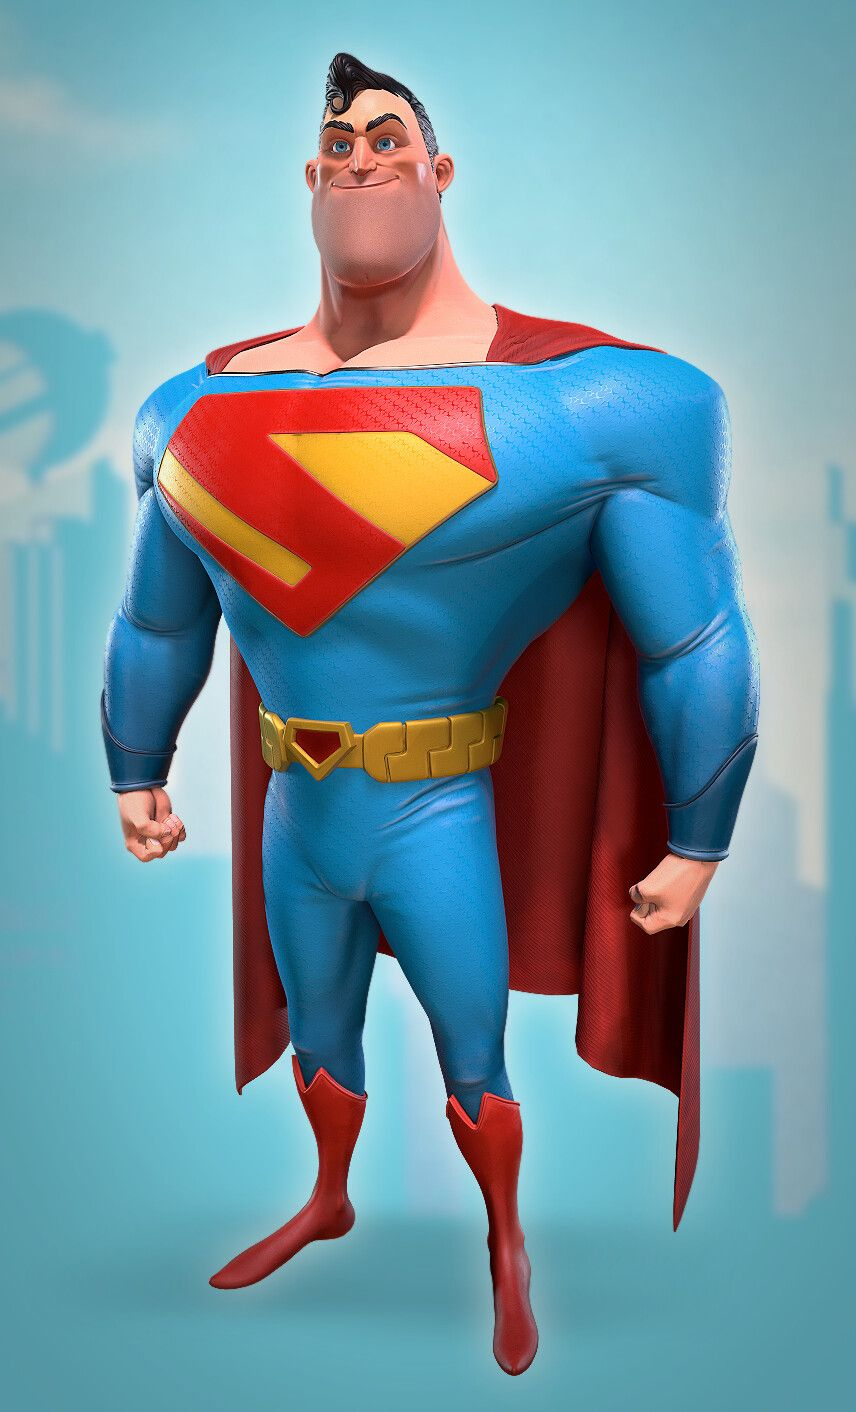 Superman Superhero Design Superman Art Superman